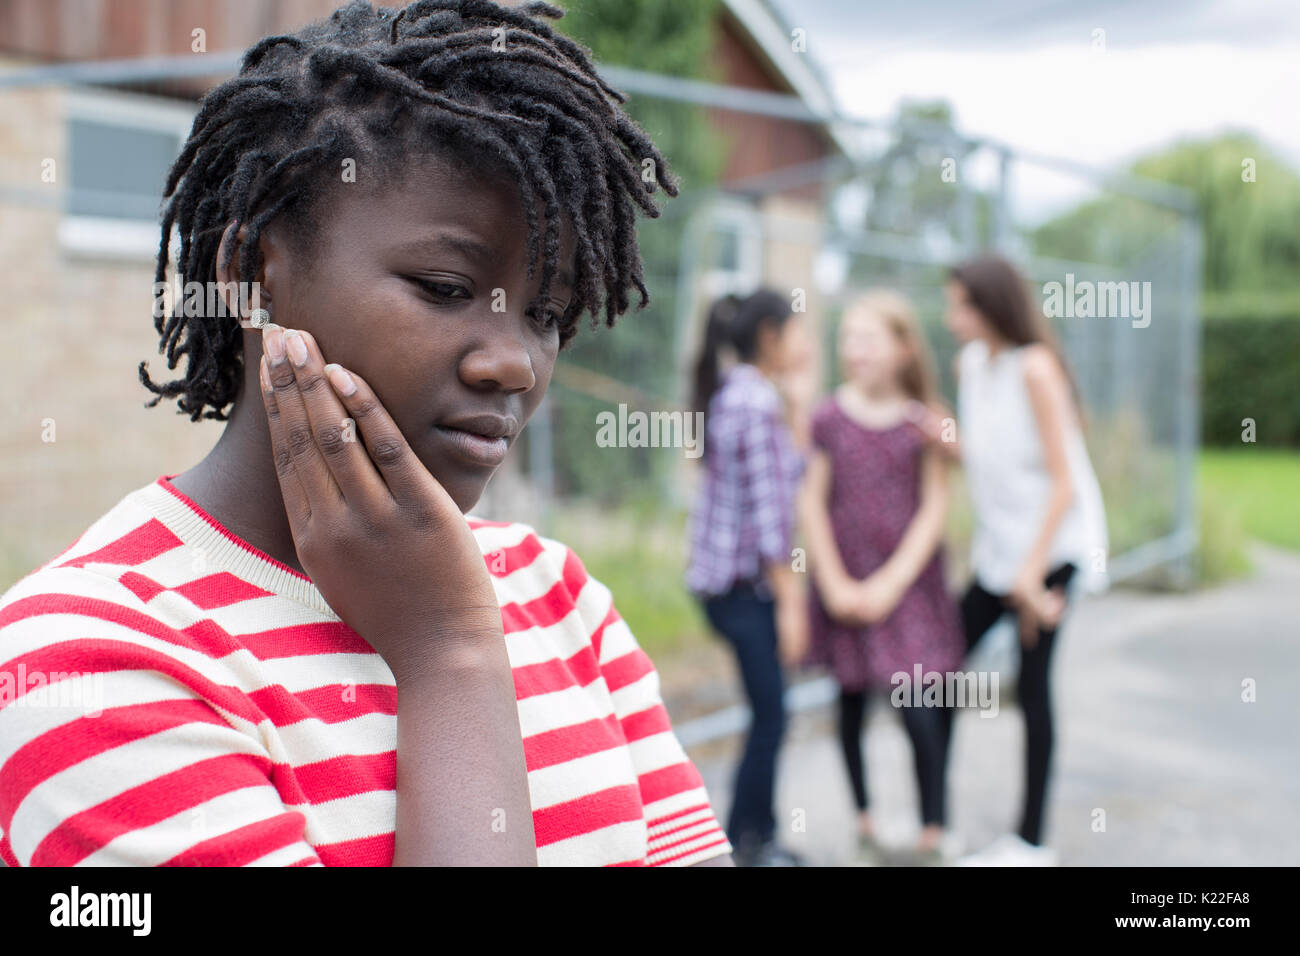 Sad Teenage Girl Feeling Left Out By Friends Stock Photo